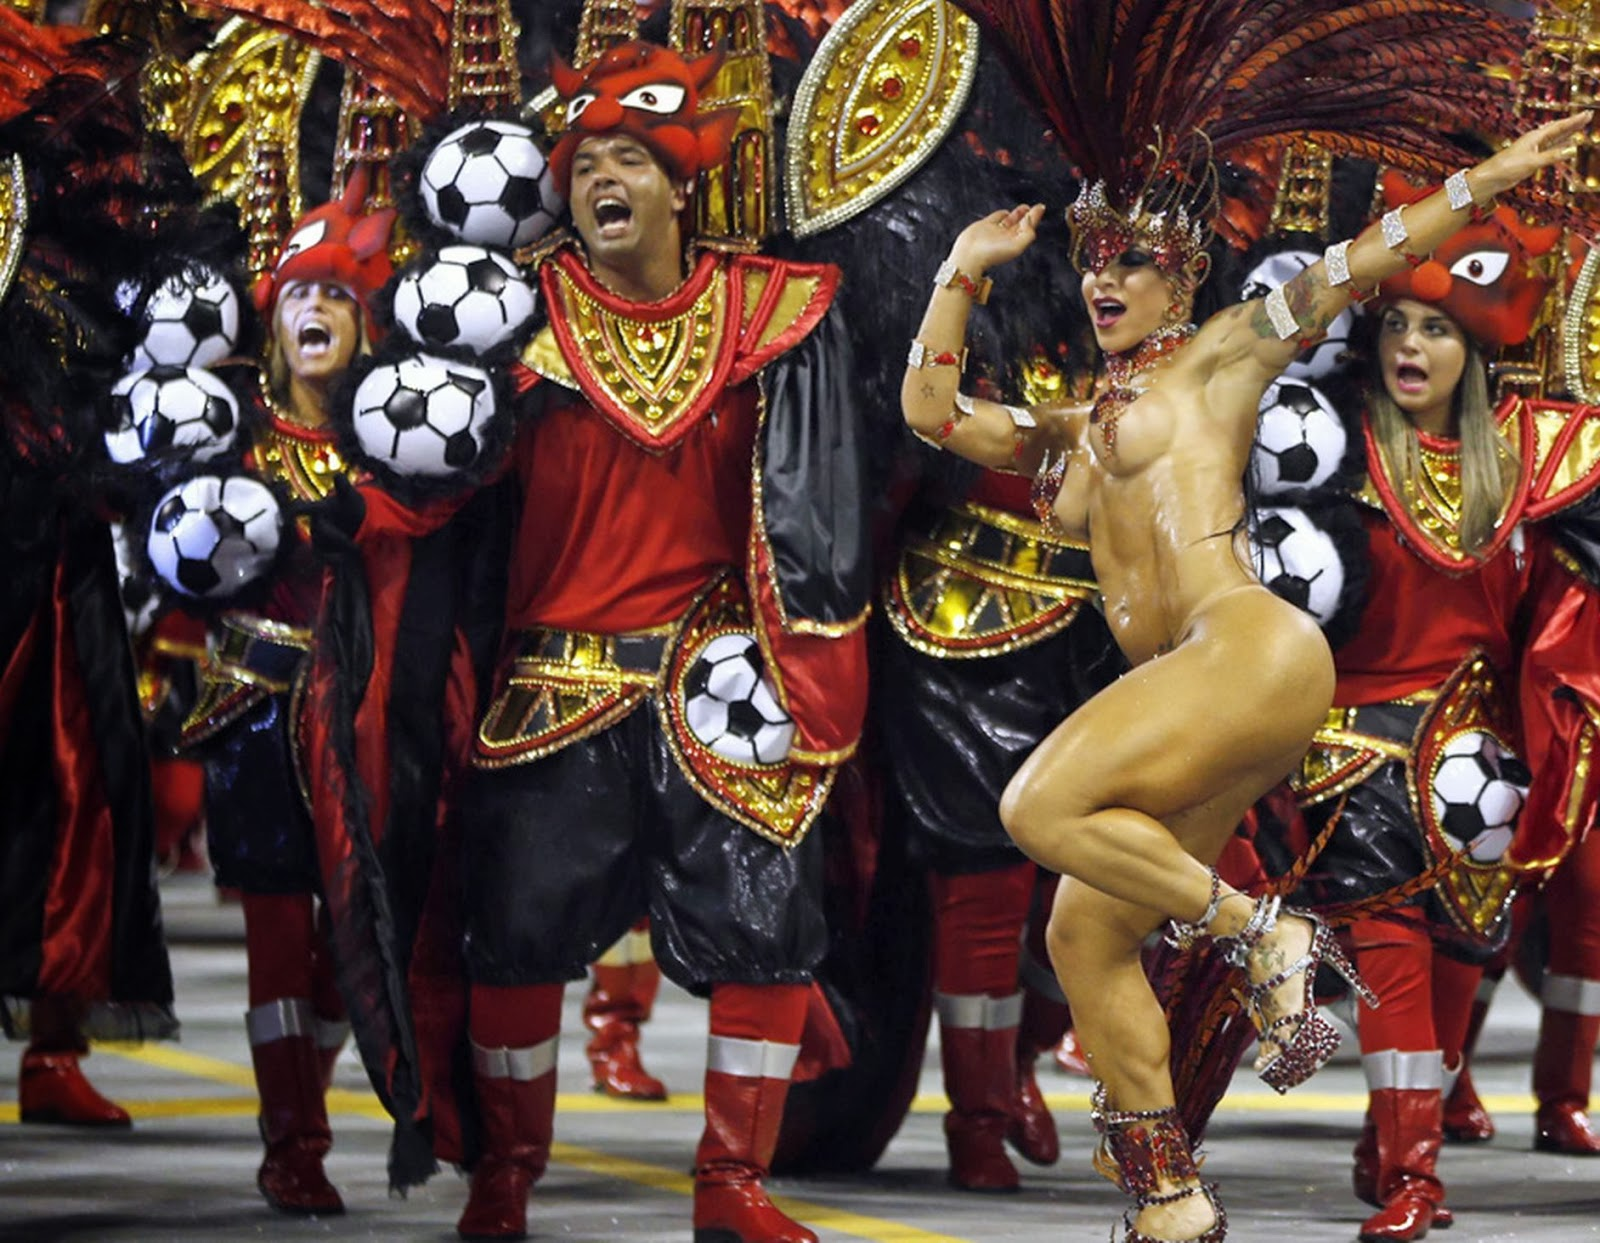 Sexiest Nude Dancing Woman From Brazilian Carnival 2014